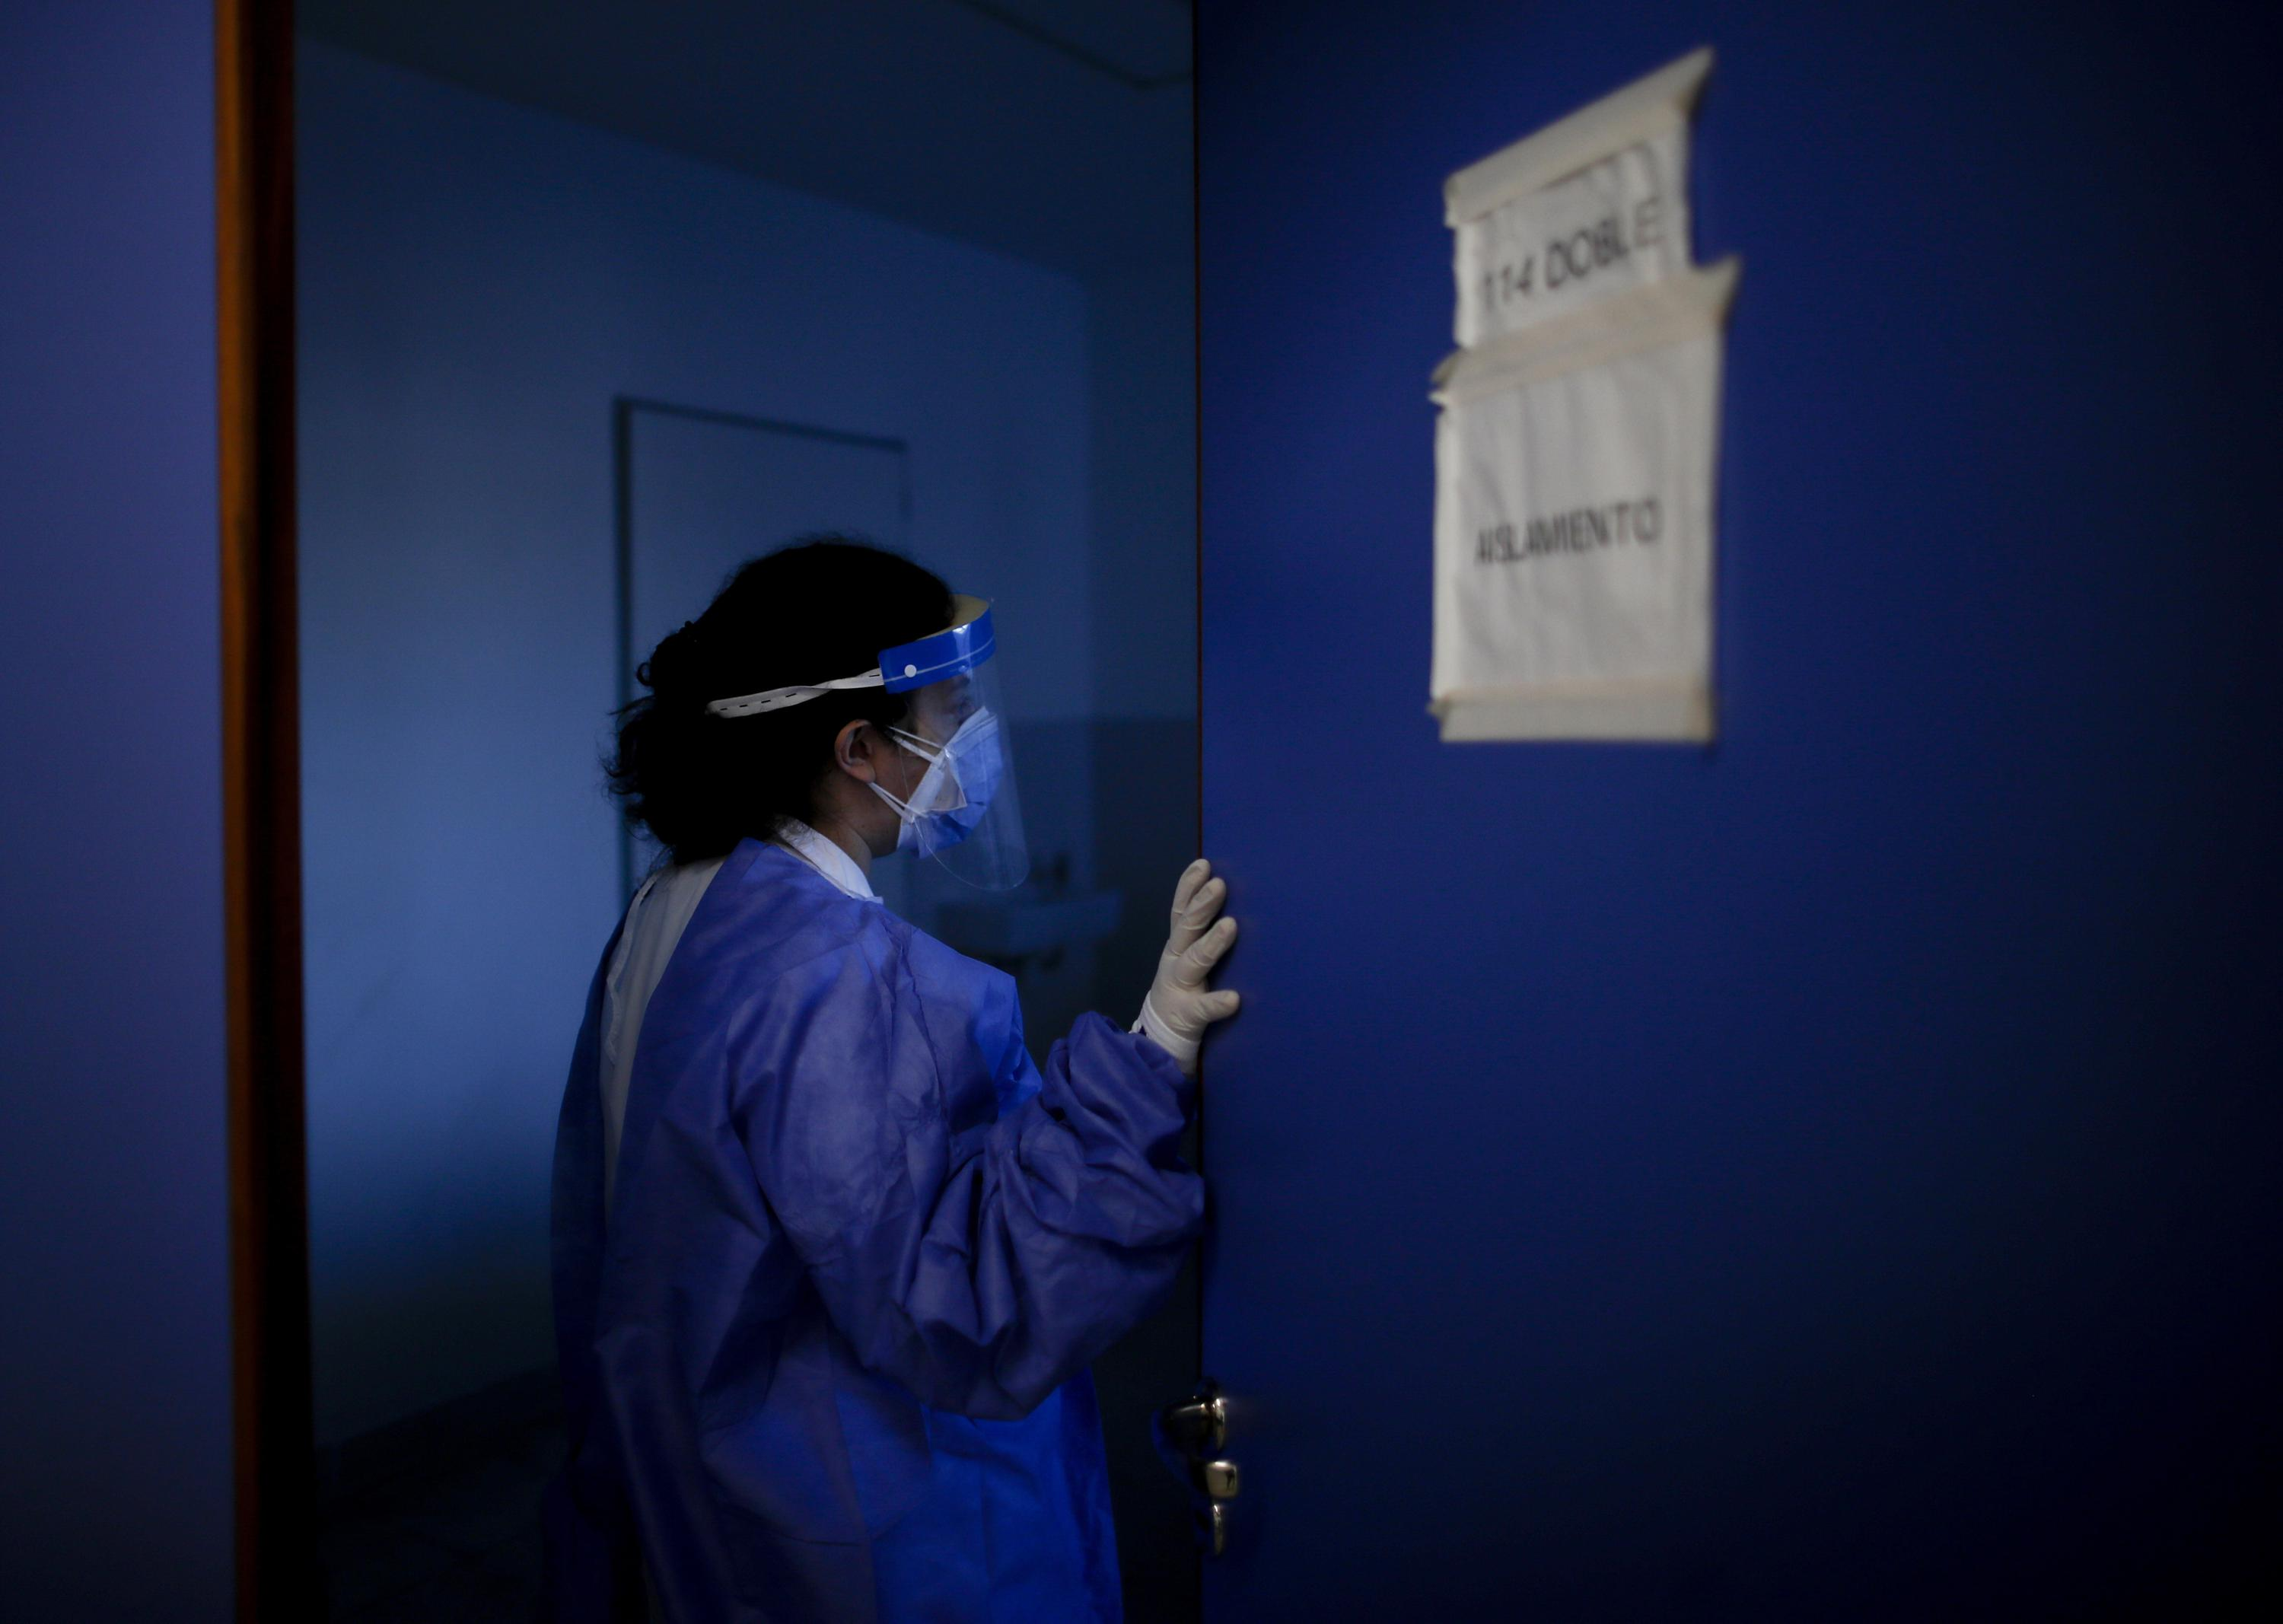 In Argentina, doctors adapt as COVID-19 strains hospitals